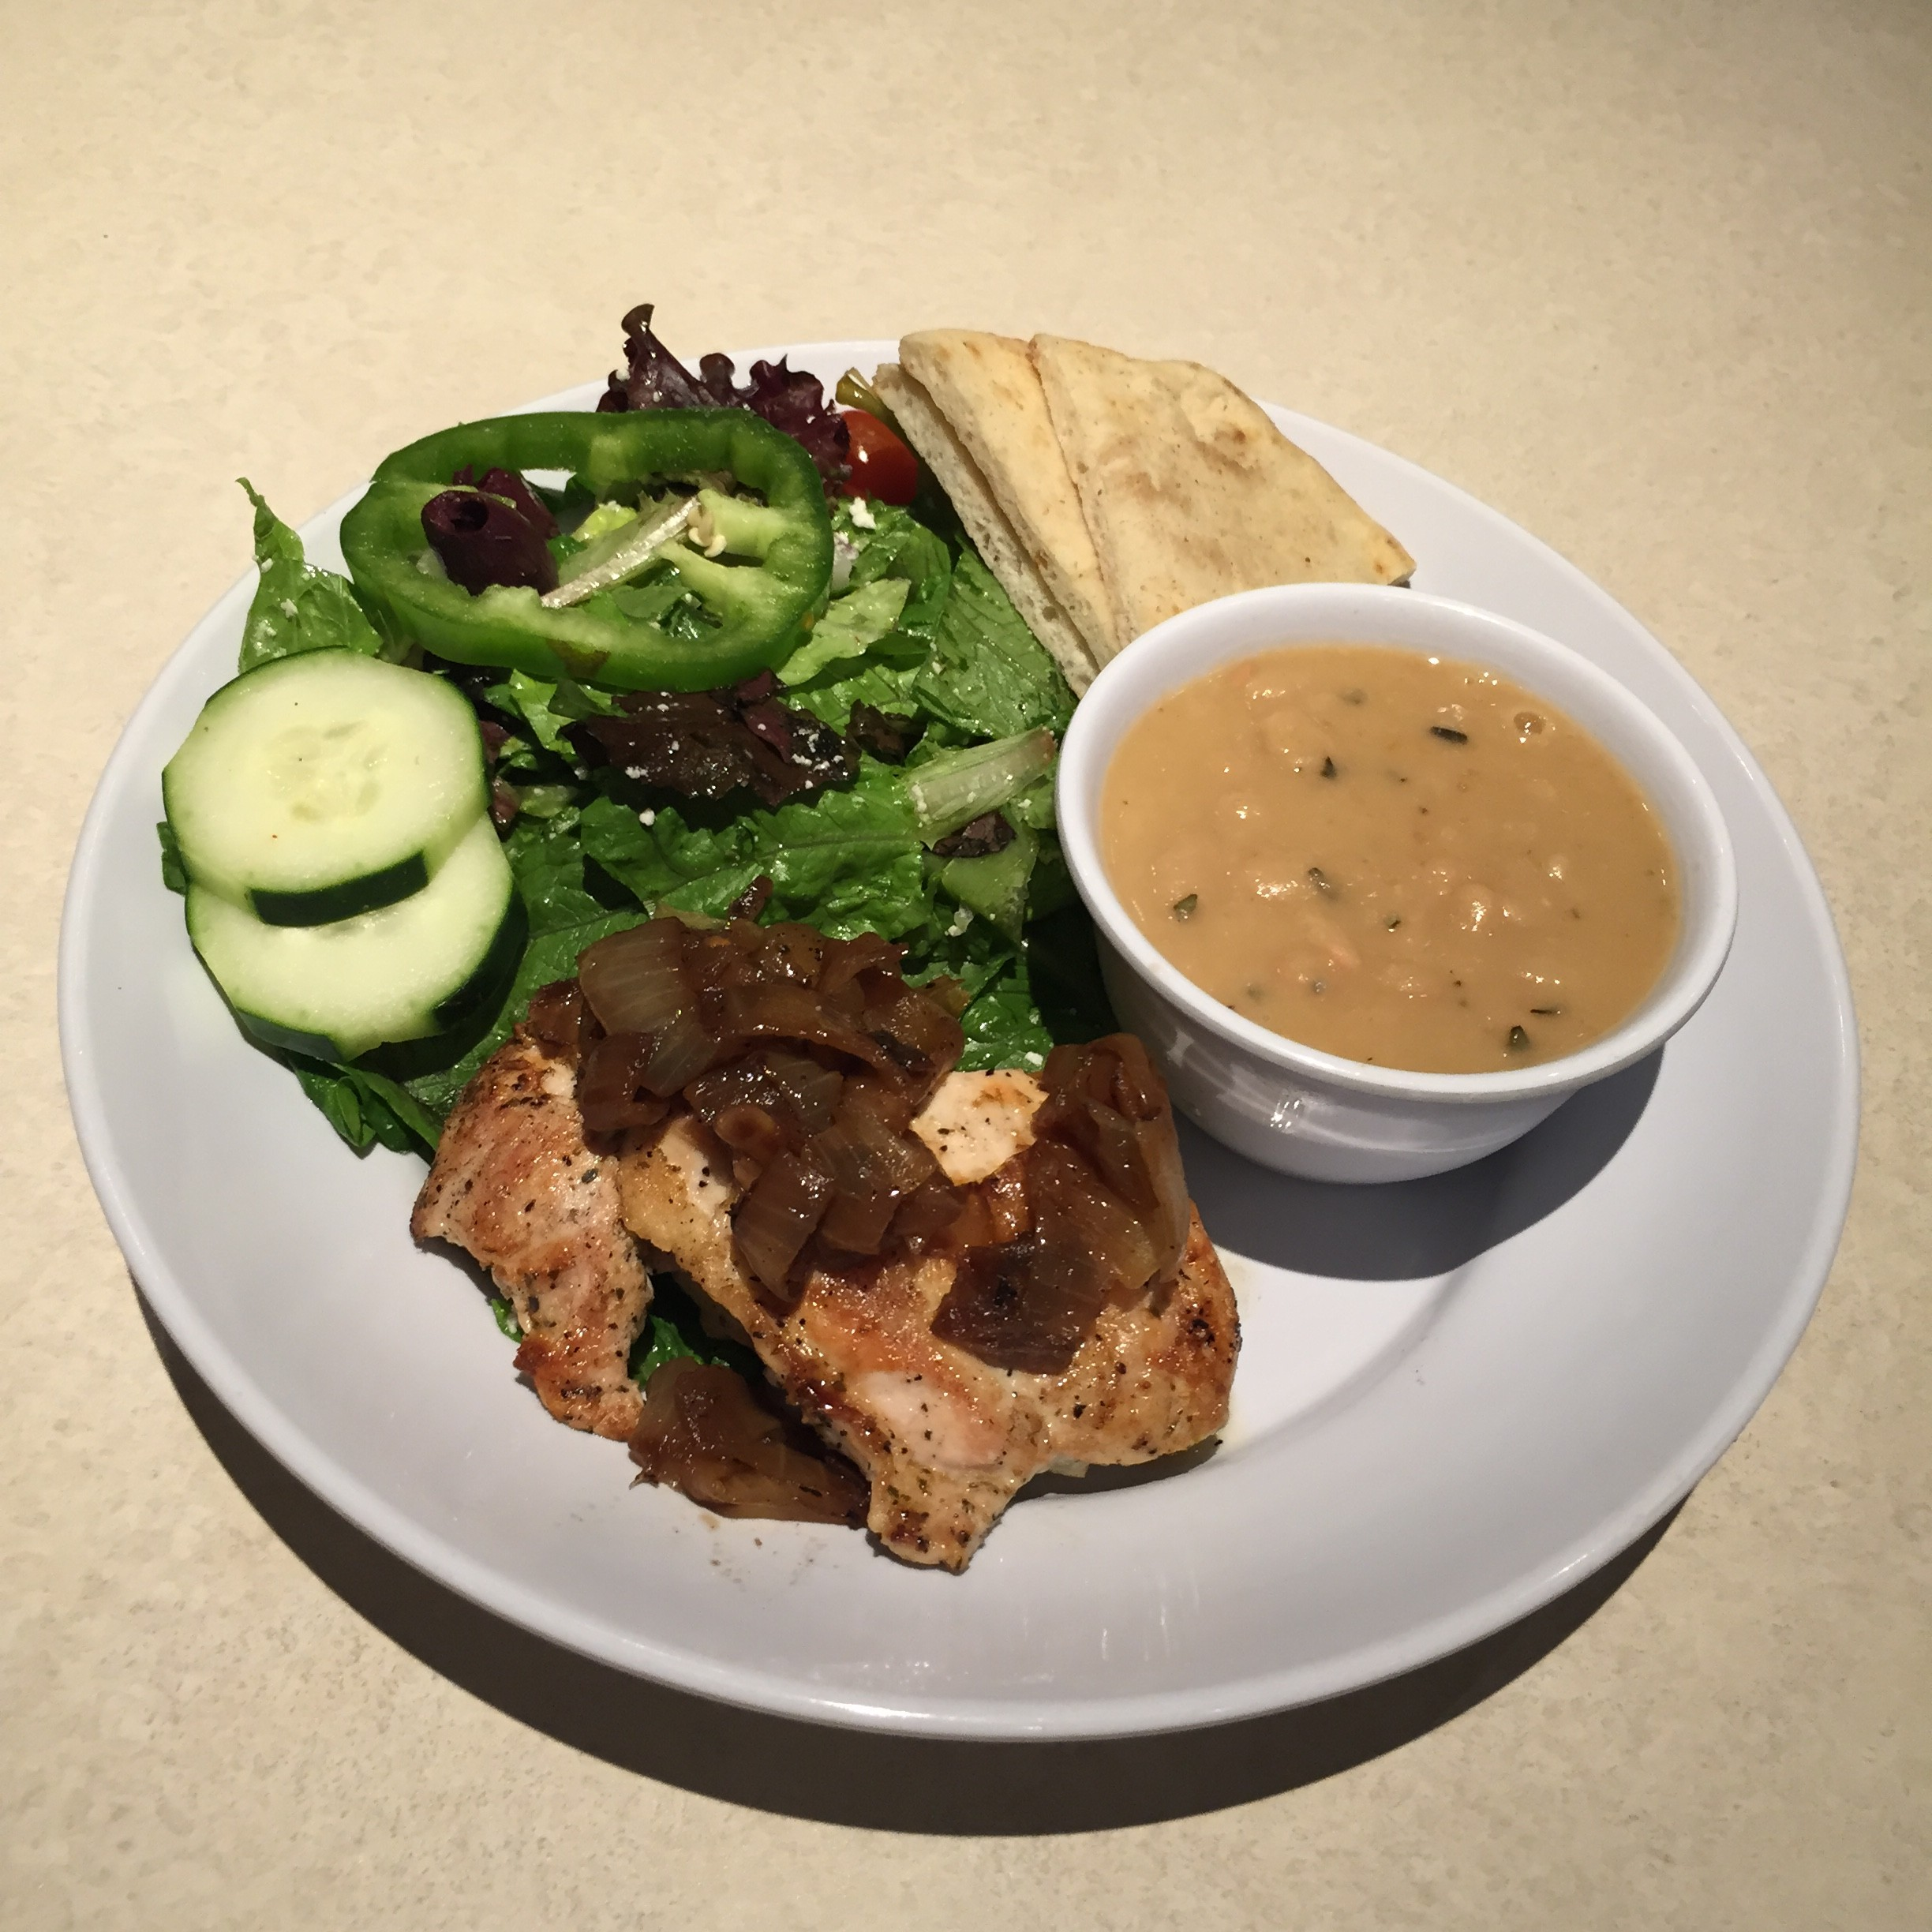 zoes kitchen adds new entree and more hummus options to its menu